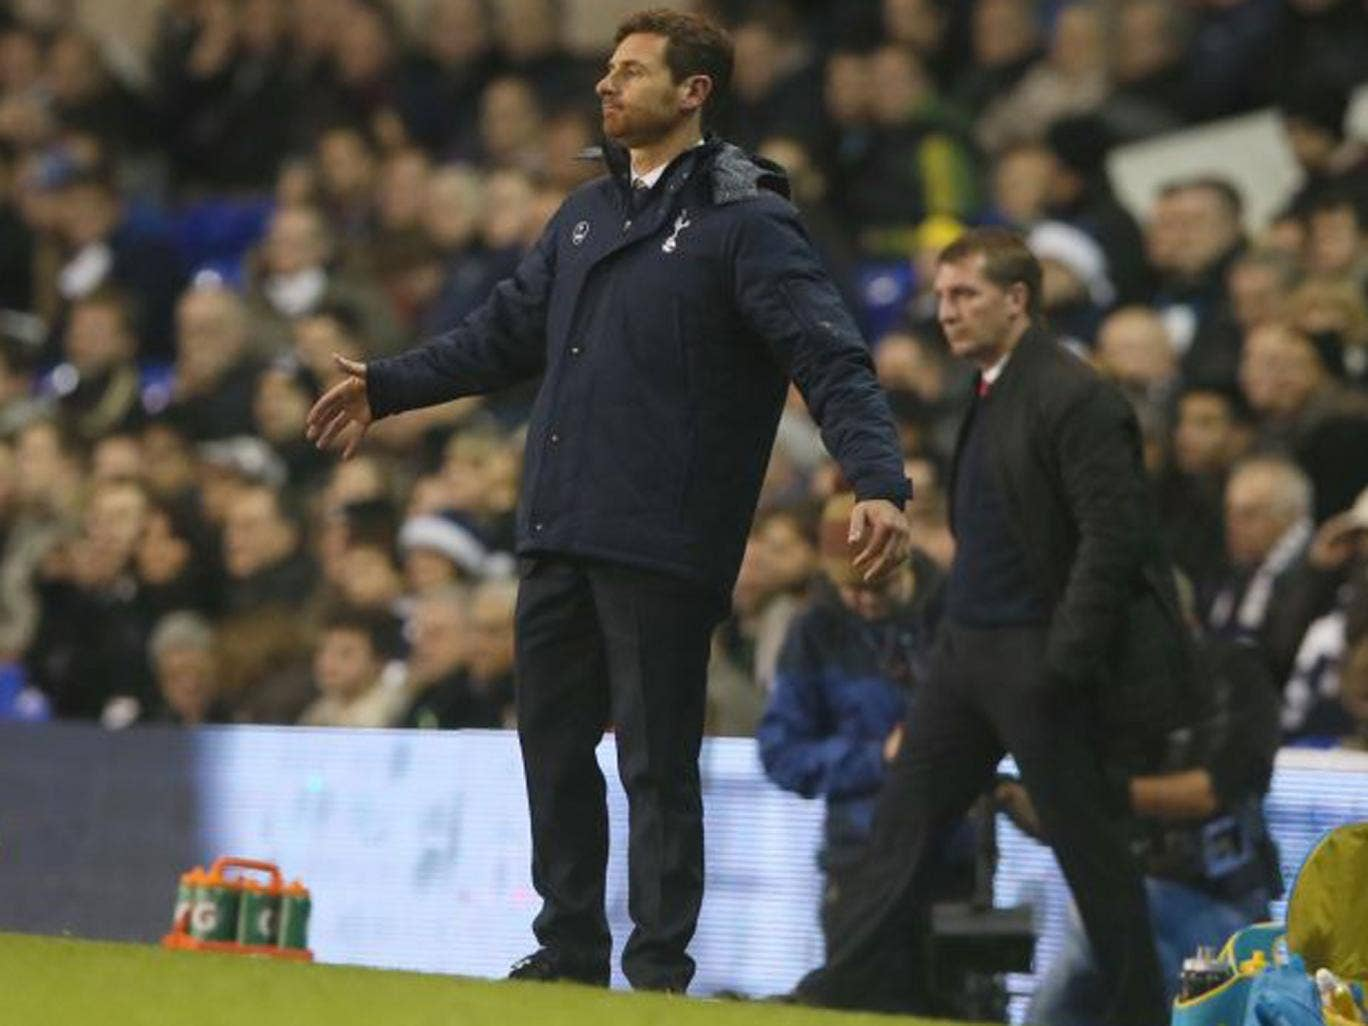 Tottenham's manager Andre Villas-Boas puts his arms out in frustration on Sunday